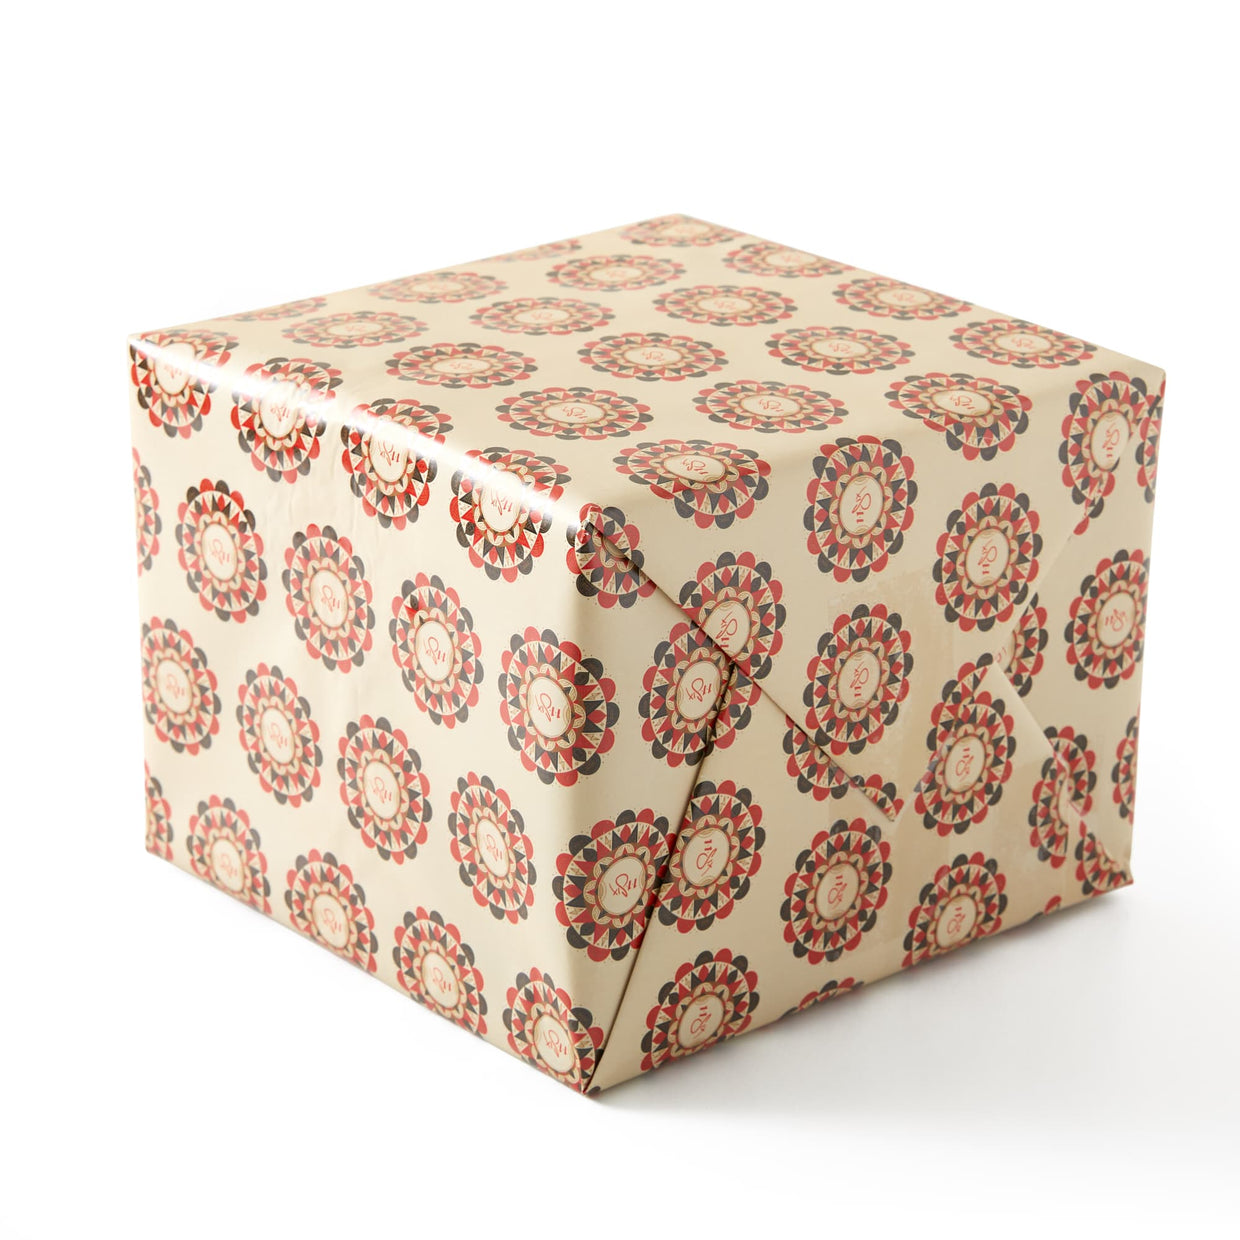 116 'The Gift' Wrapping Paper